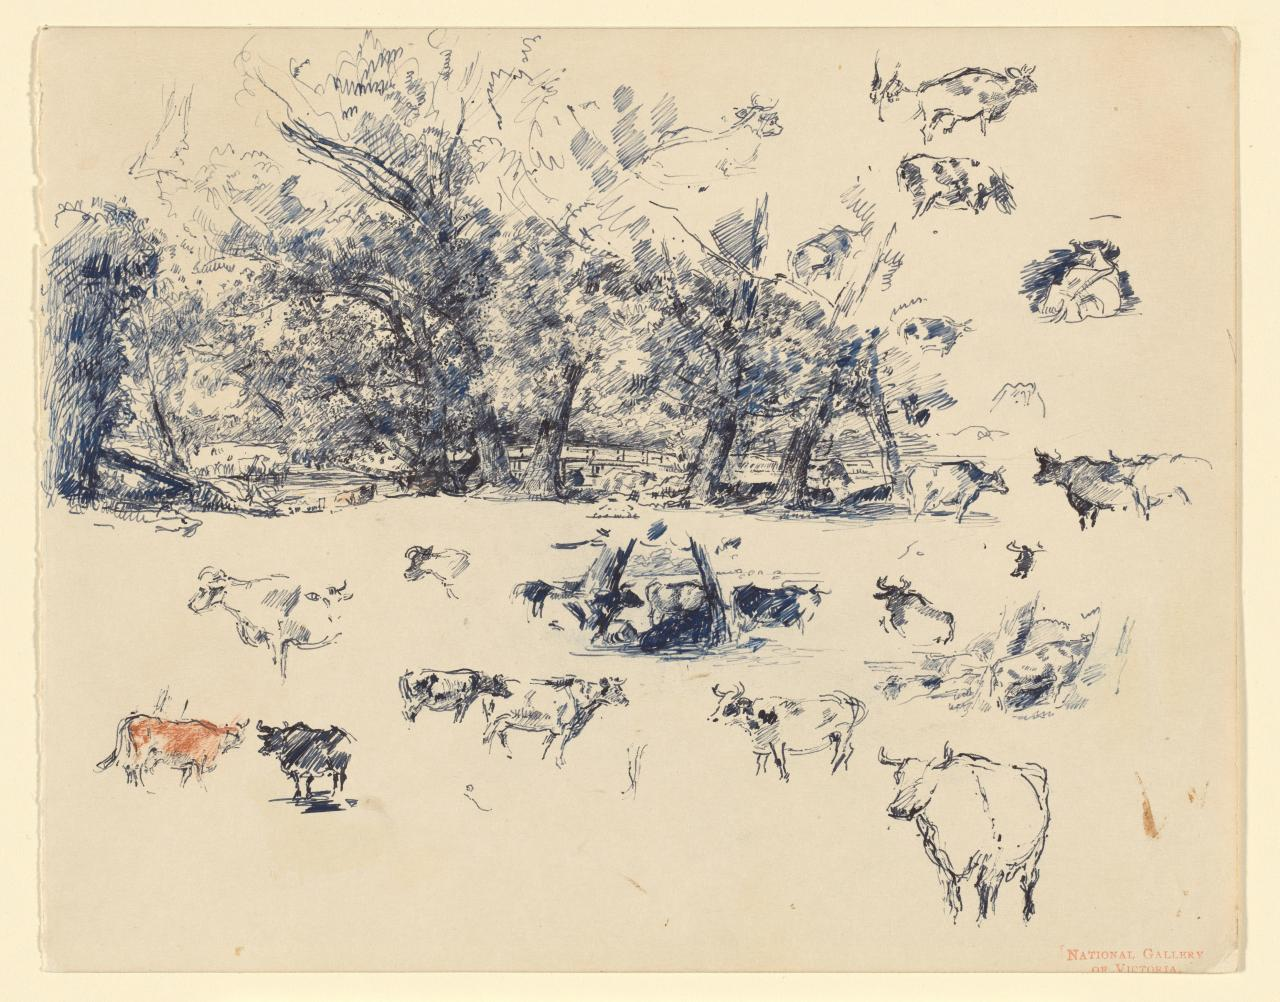 Sketch of cows and trees